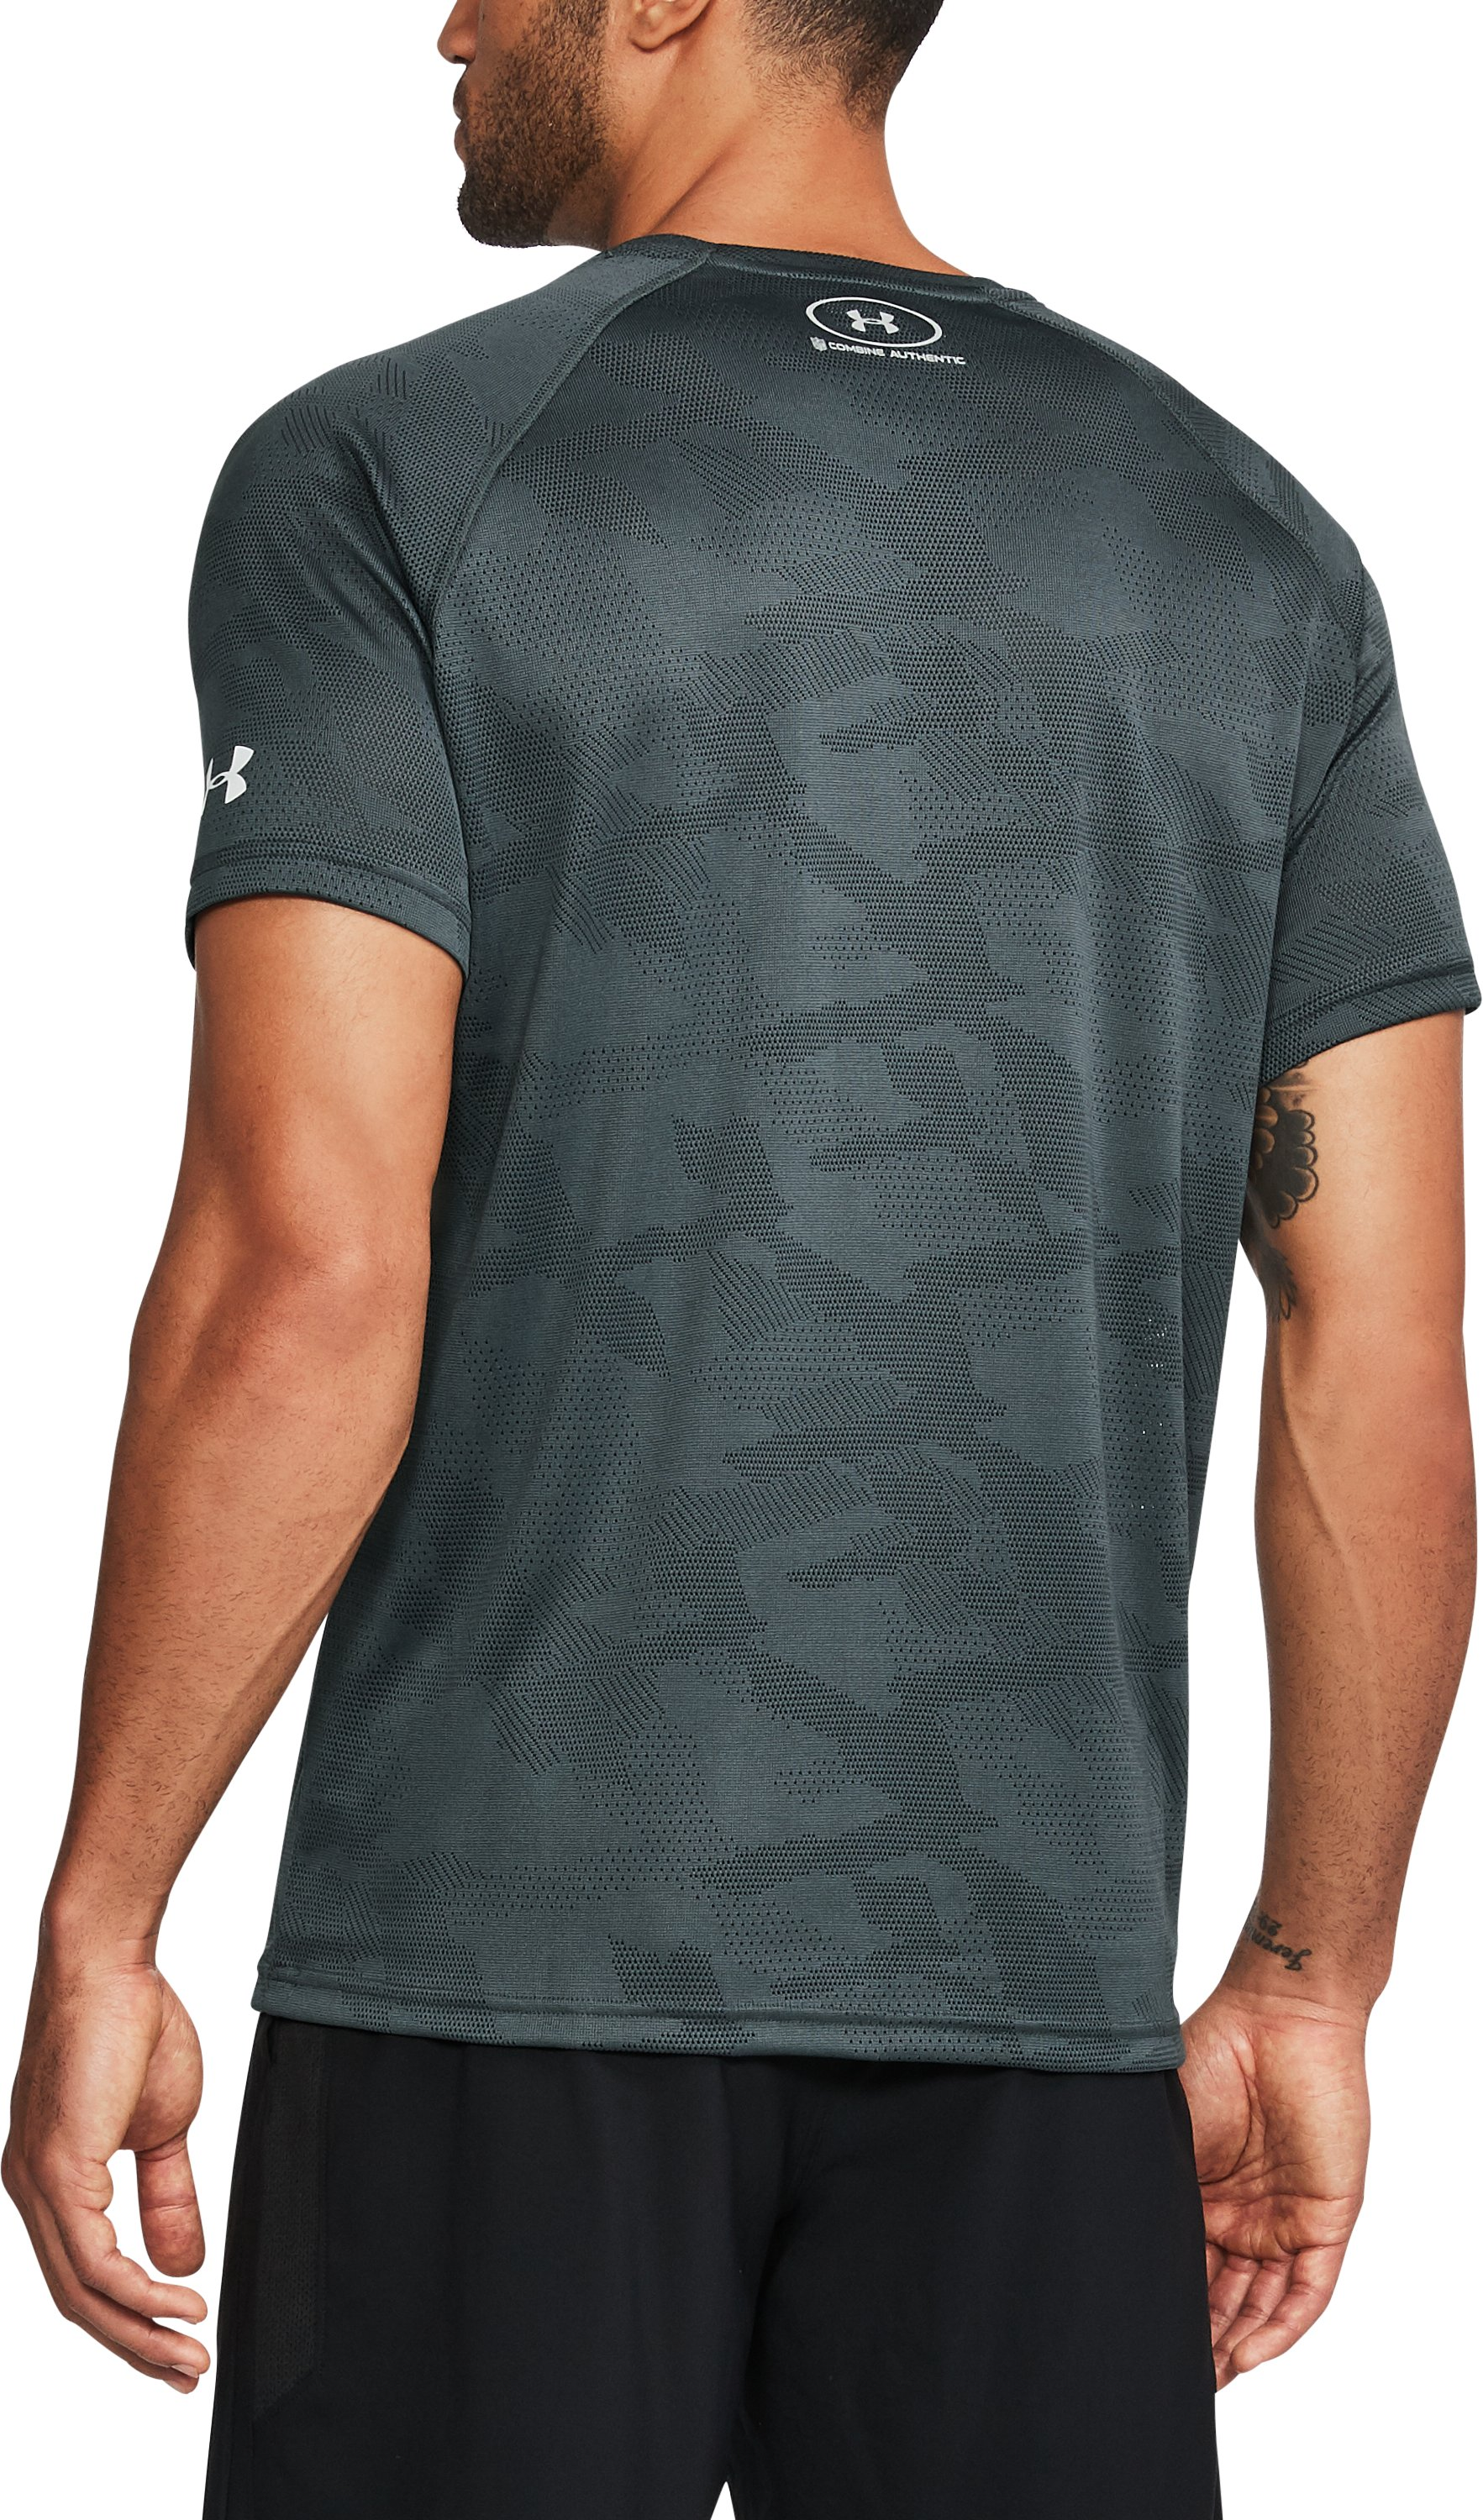 Men's NFL Combine Authentic UA Tech™ Jacquard T-Shirt , NFL_PHILADELPHIA EAGLES_STEALTH GRAY, undefined